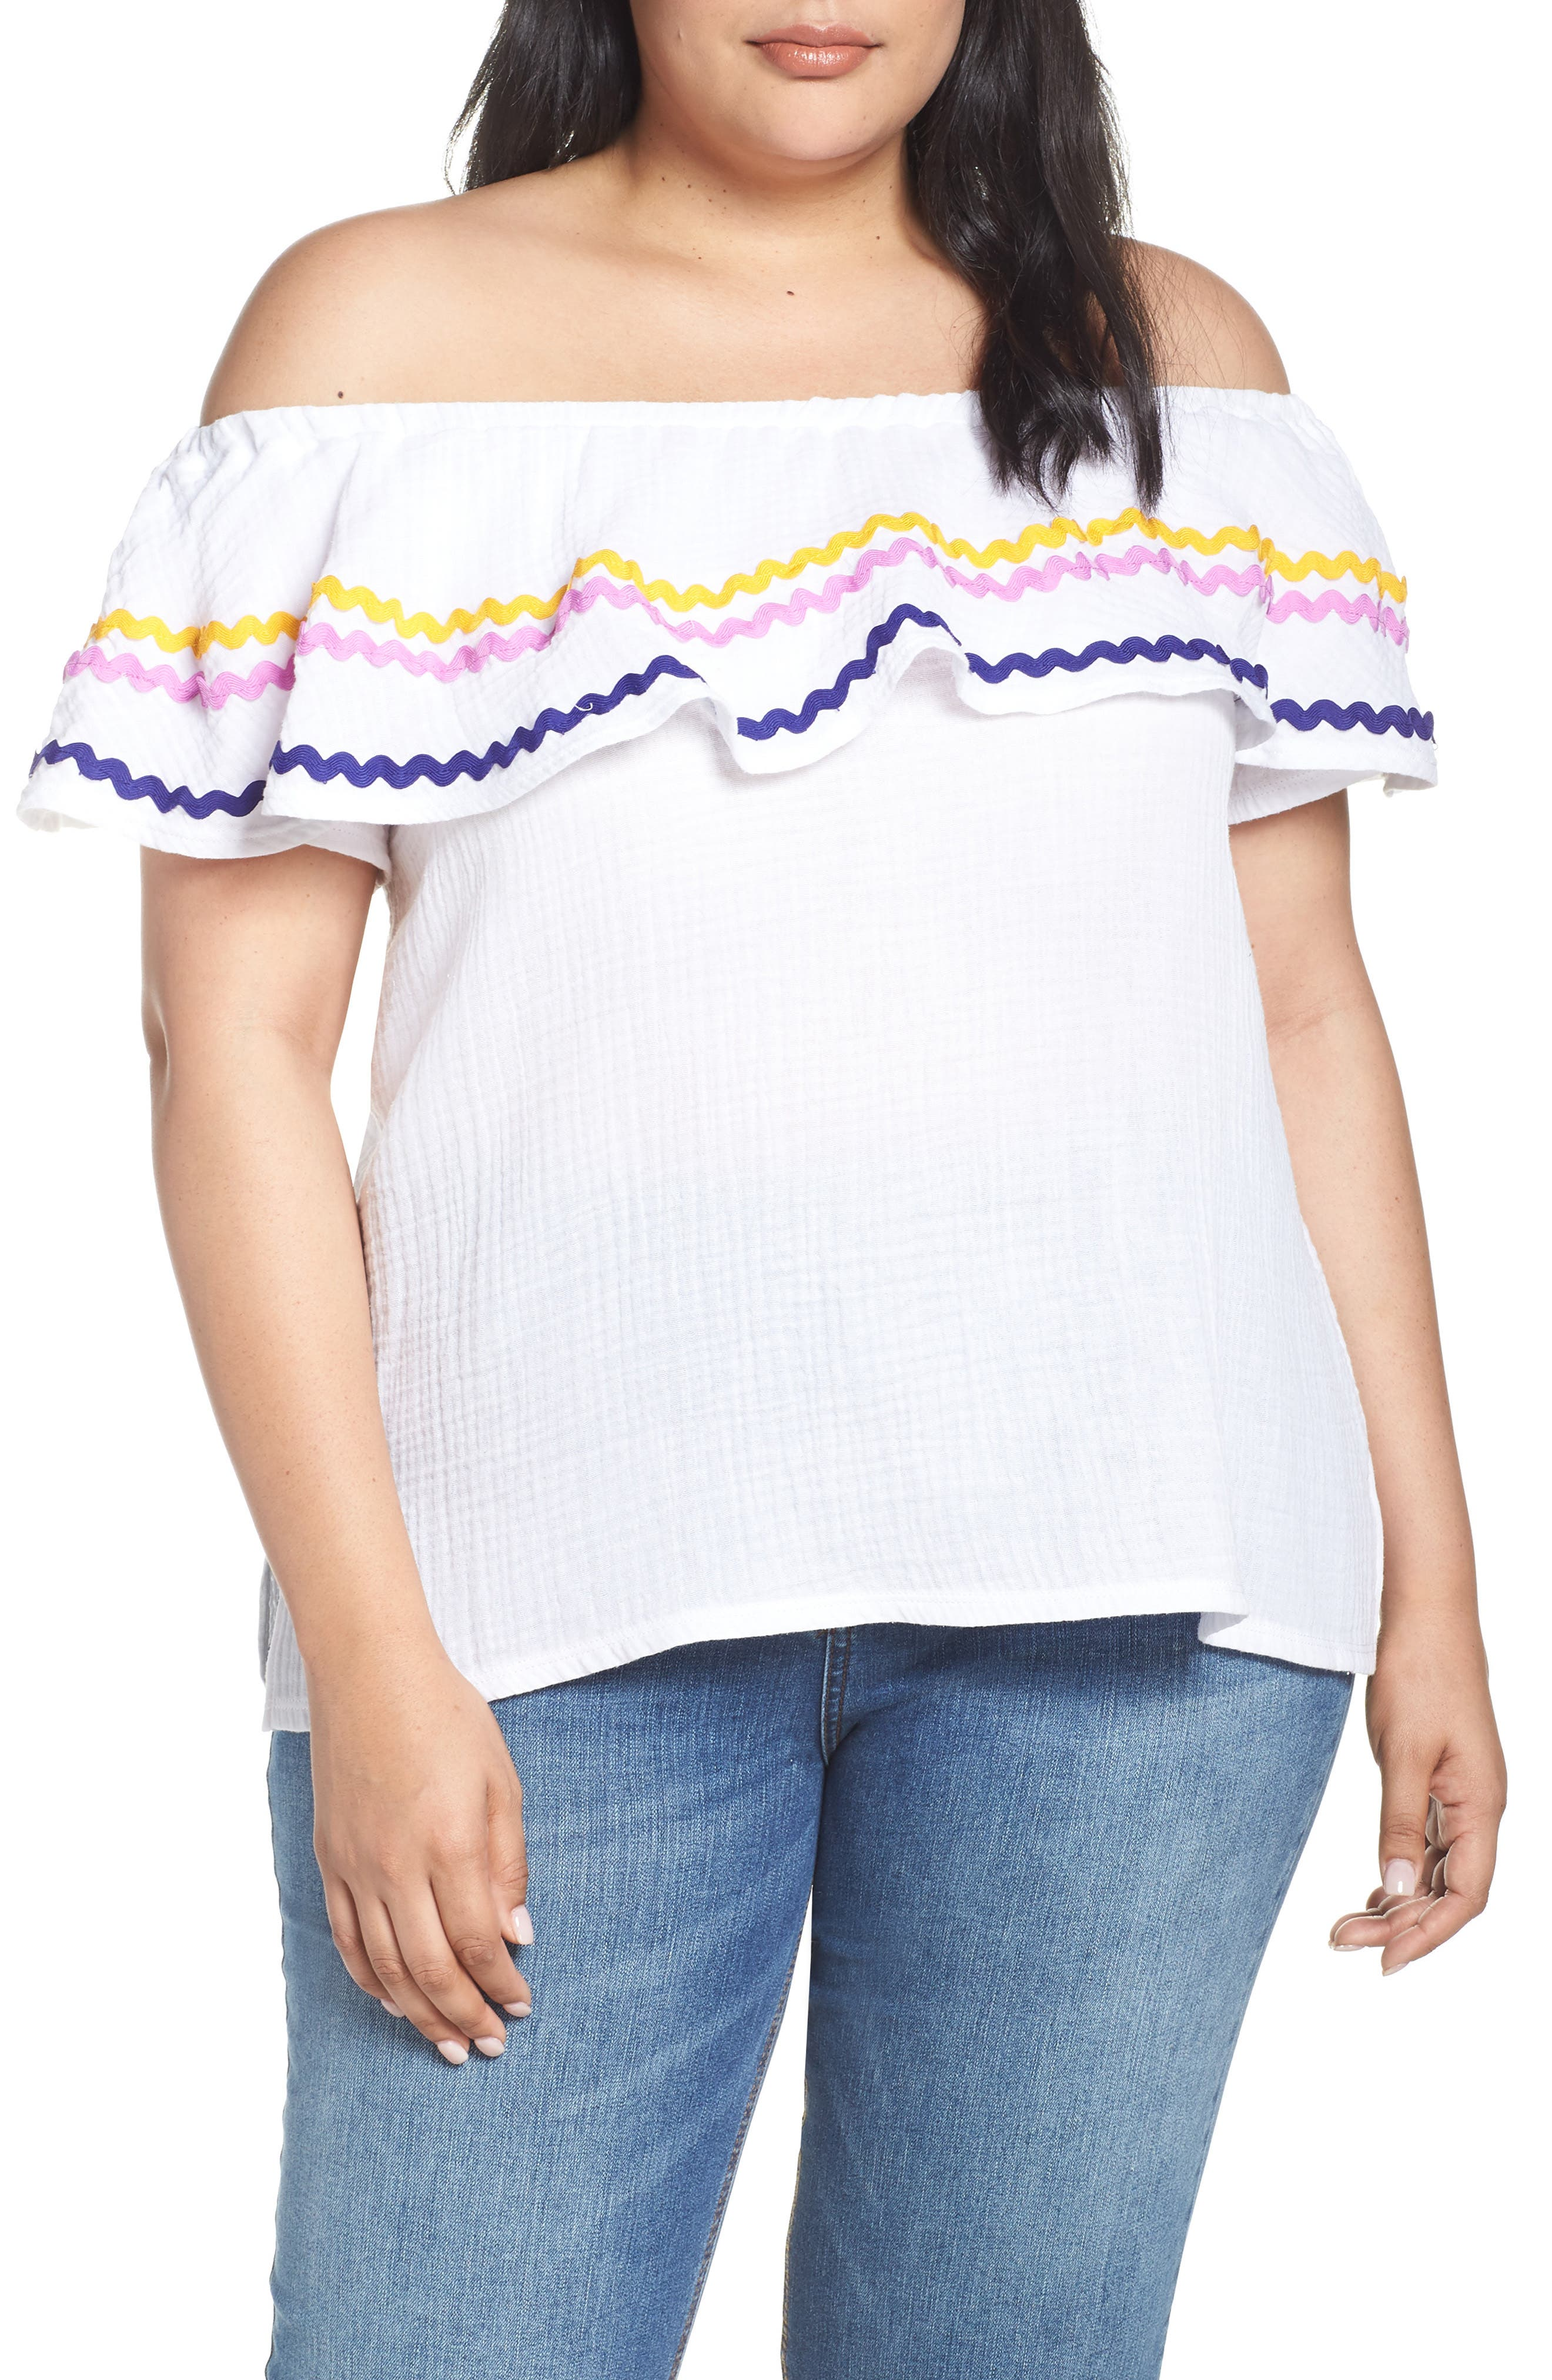 Plus Size Gibson X Hi Sugarplum! Santa Fe Rickrack Off The Shoulder Top, White (Plus Size) (Nordstrom Exclusive)